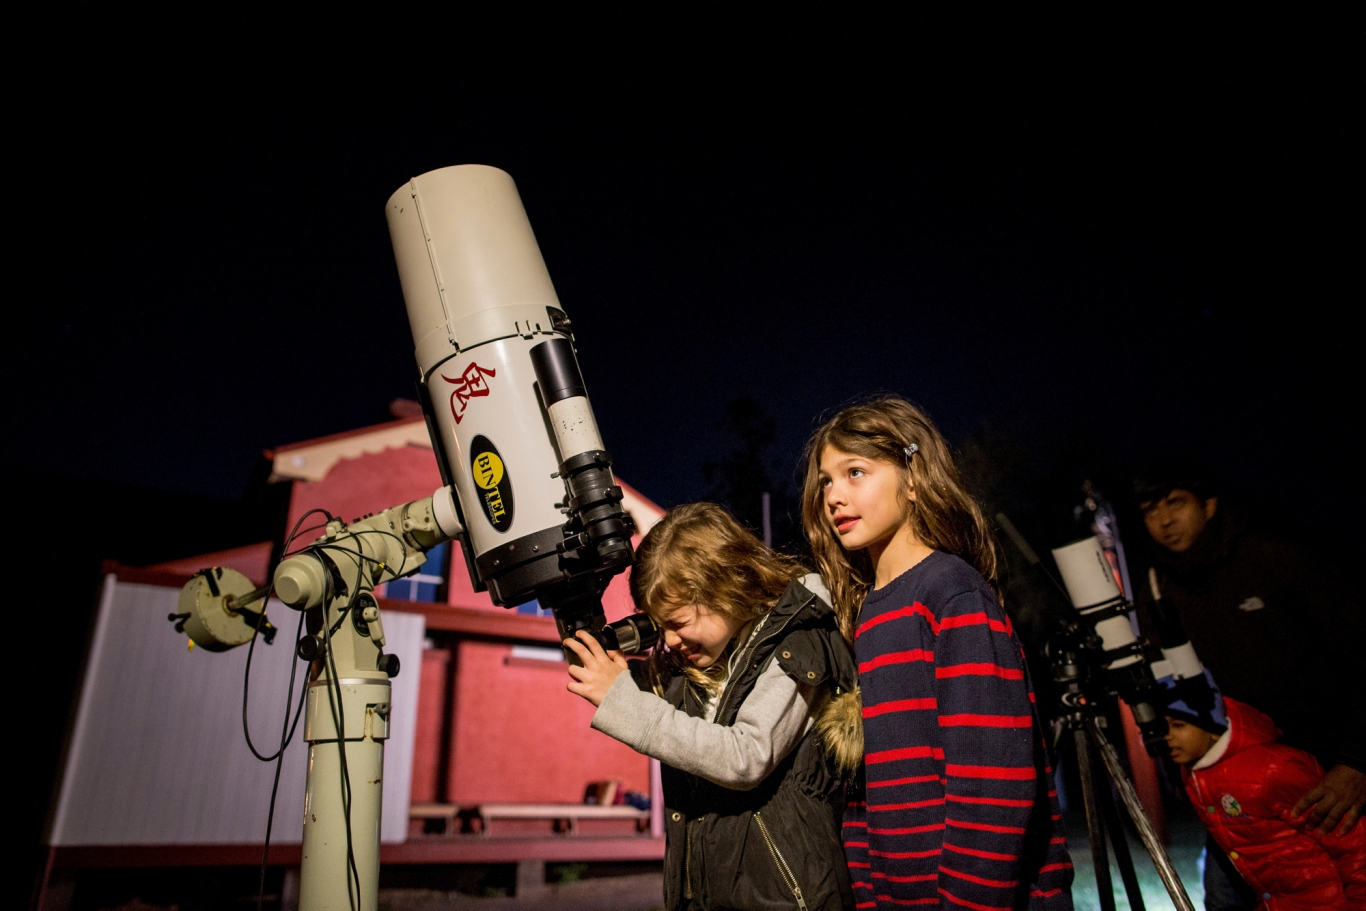 Stargazing: Rouse Hill House & Farm | Sydney Living Museums